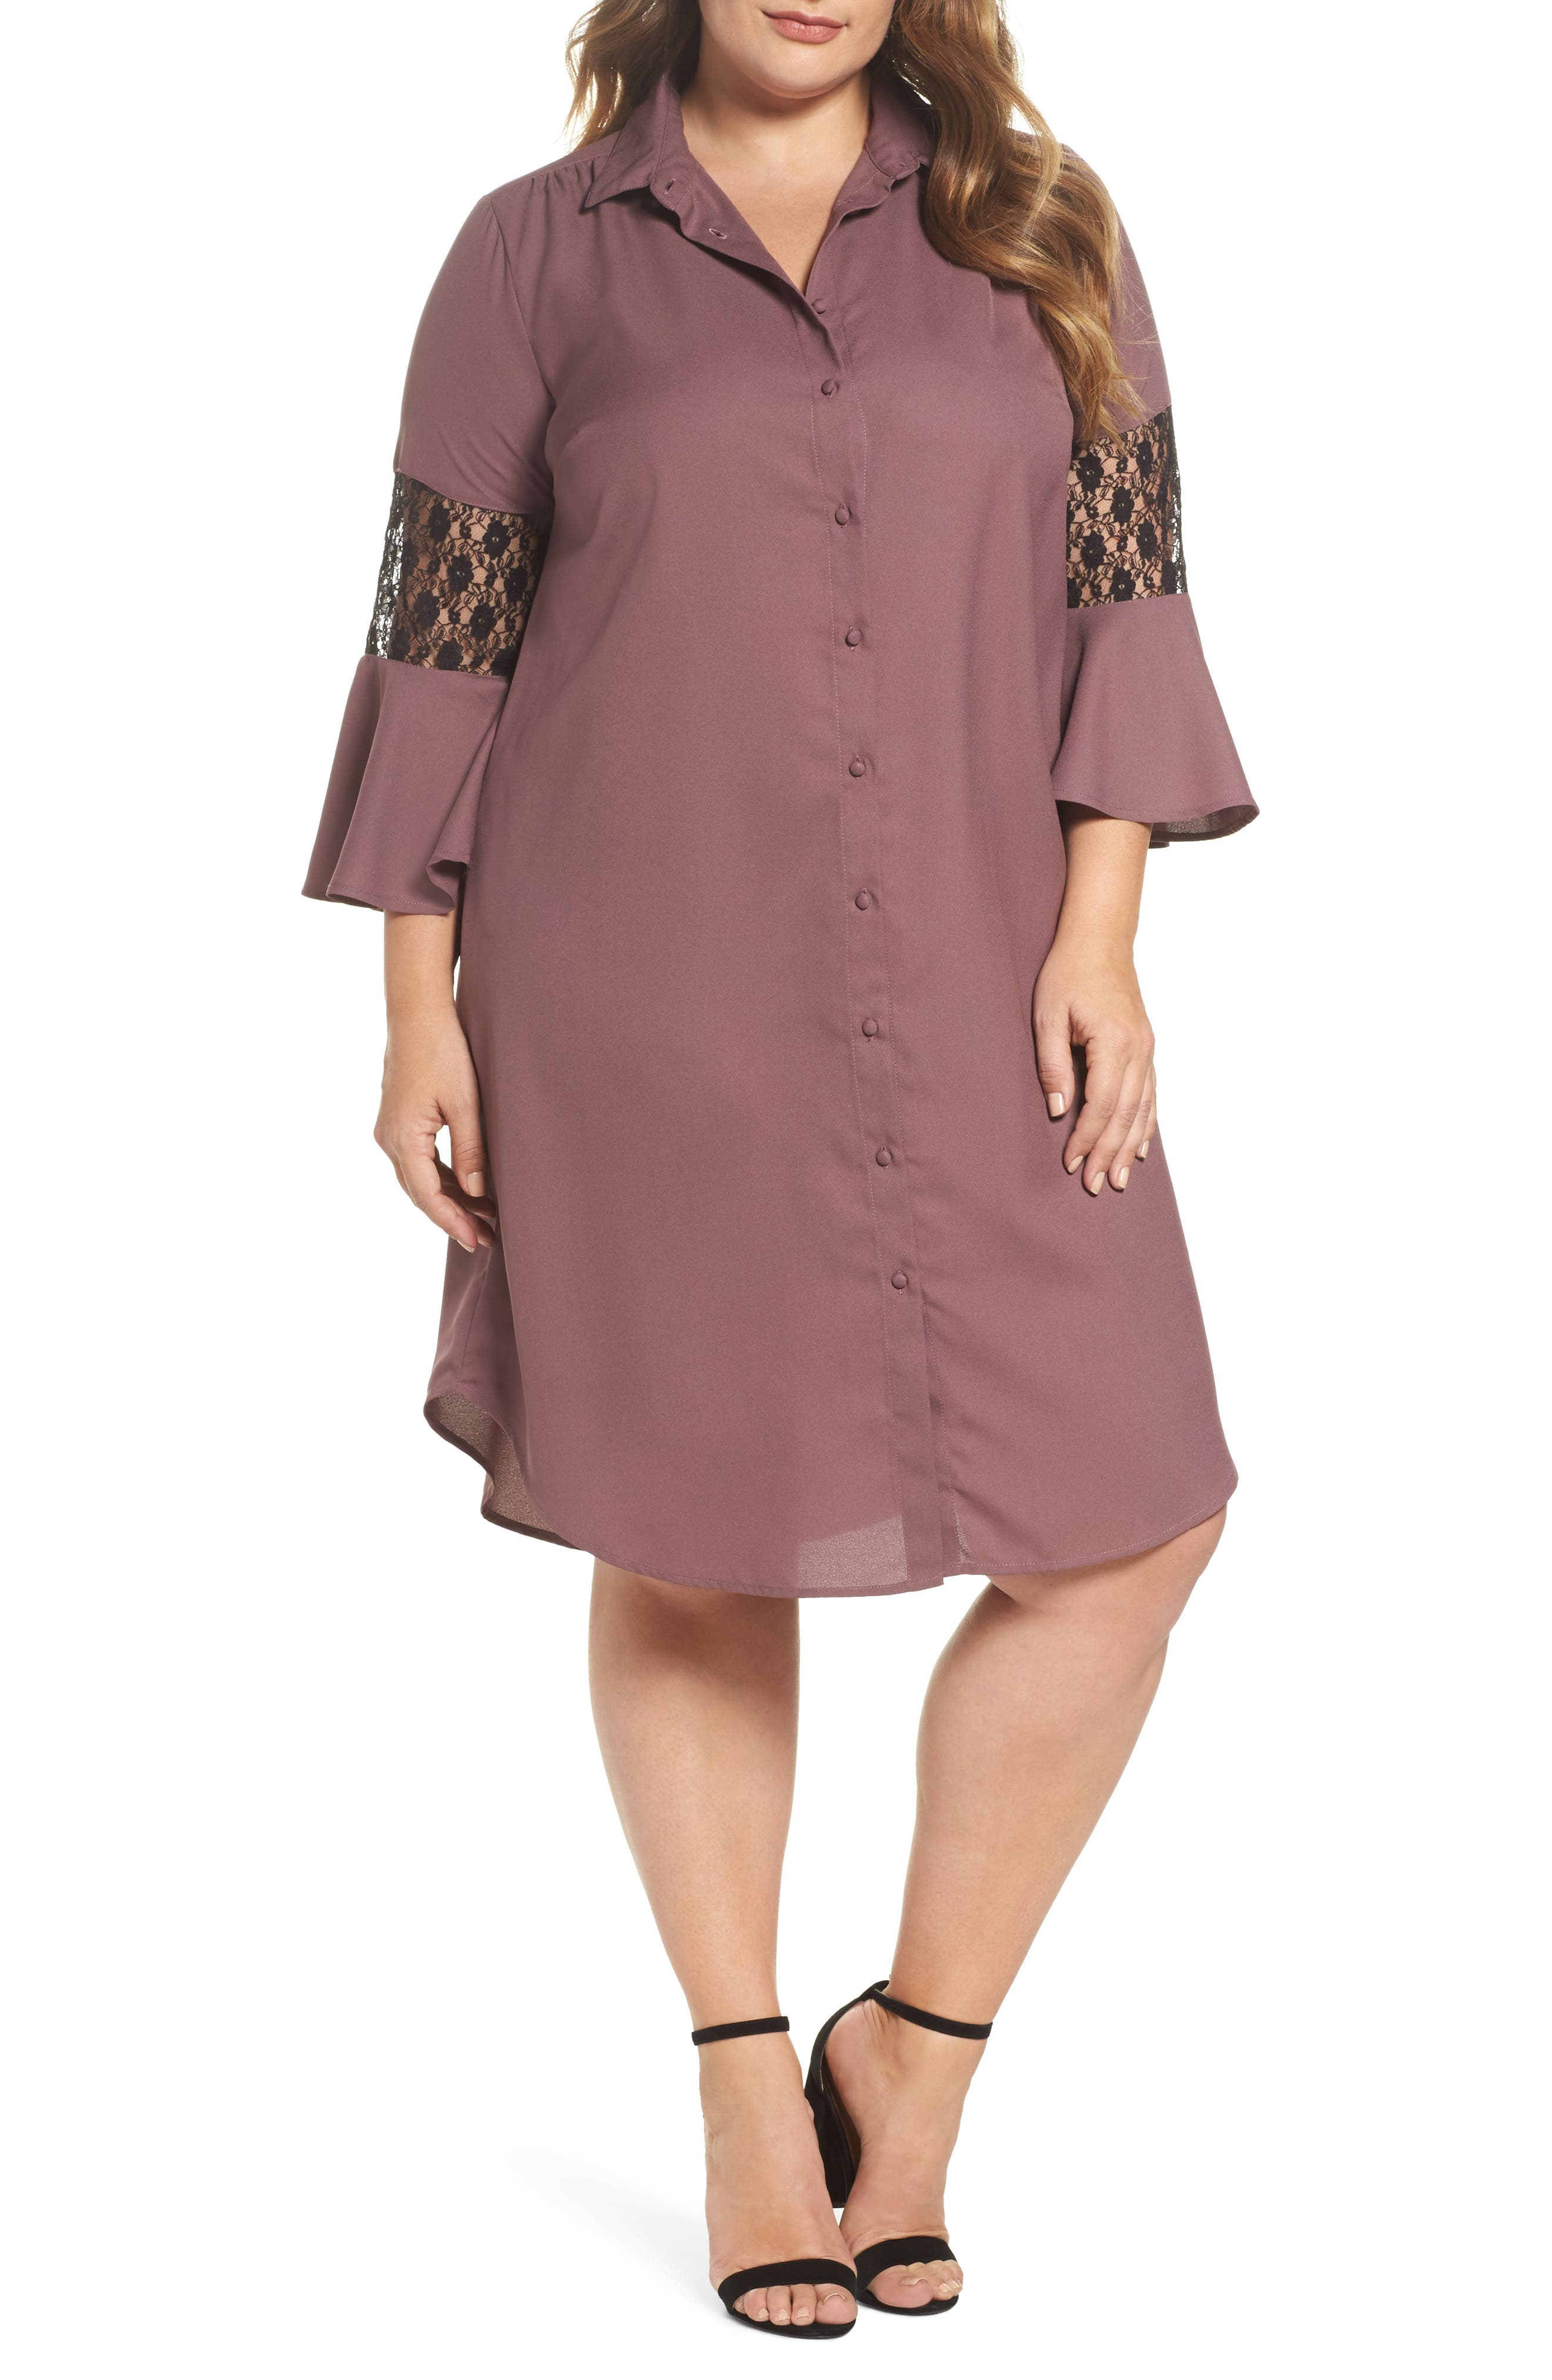 Main Image - LOST INK Lace Inset Shirtdress (Plus Size)